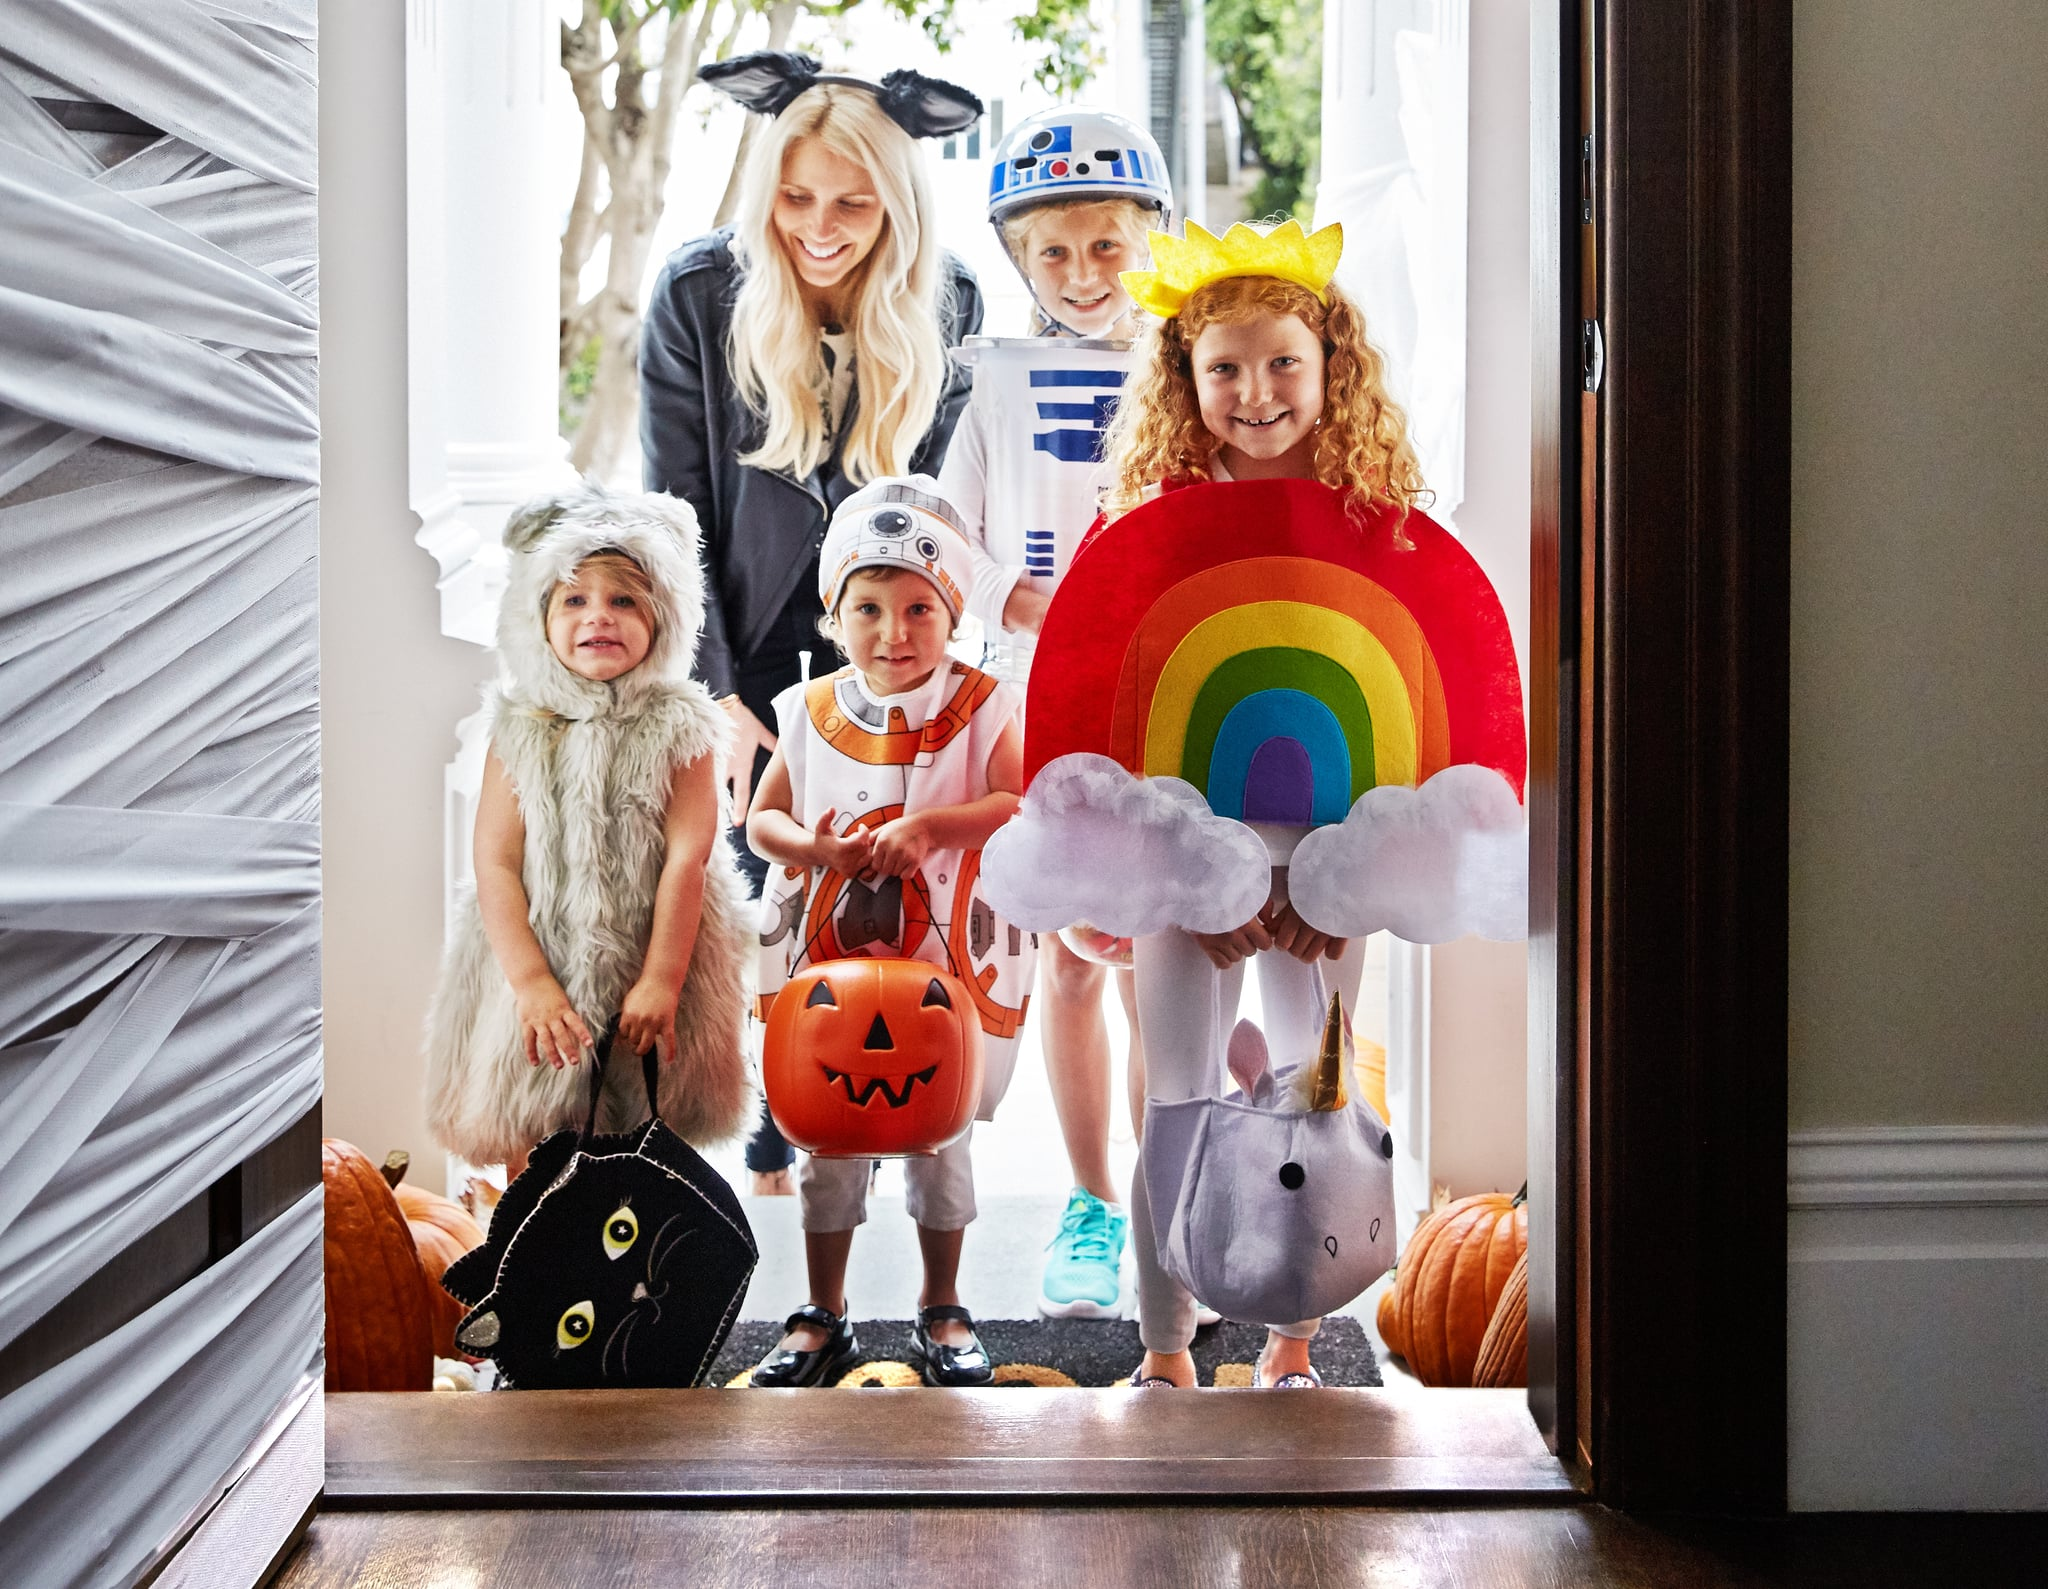 PopsugarFamilyHalloweenTypes of Kids You Meet Trick-or-Treating on HalloweenThe Kids You Meet While Trick-or-TreatingOctober 26, 2016 by Kate Schweitzer64 SharesParent or not, we all know that there are several distinct categories of kids who come a-calling on Halloween night. We